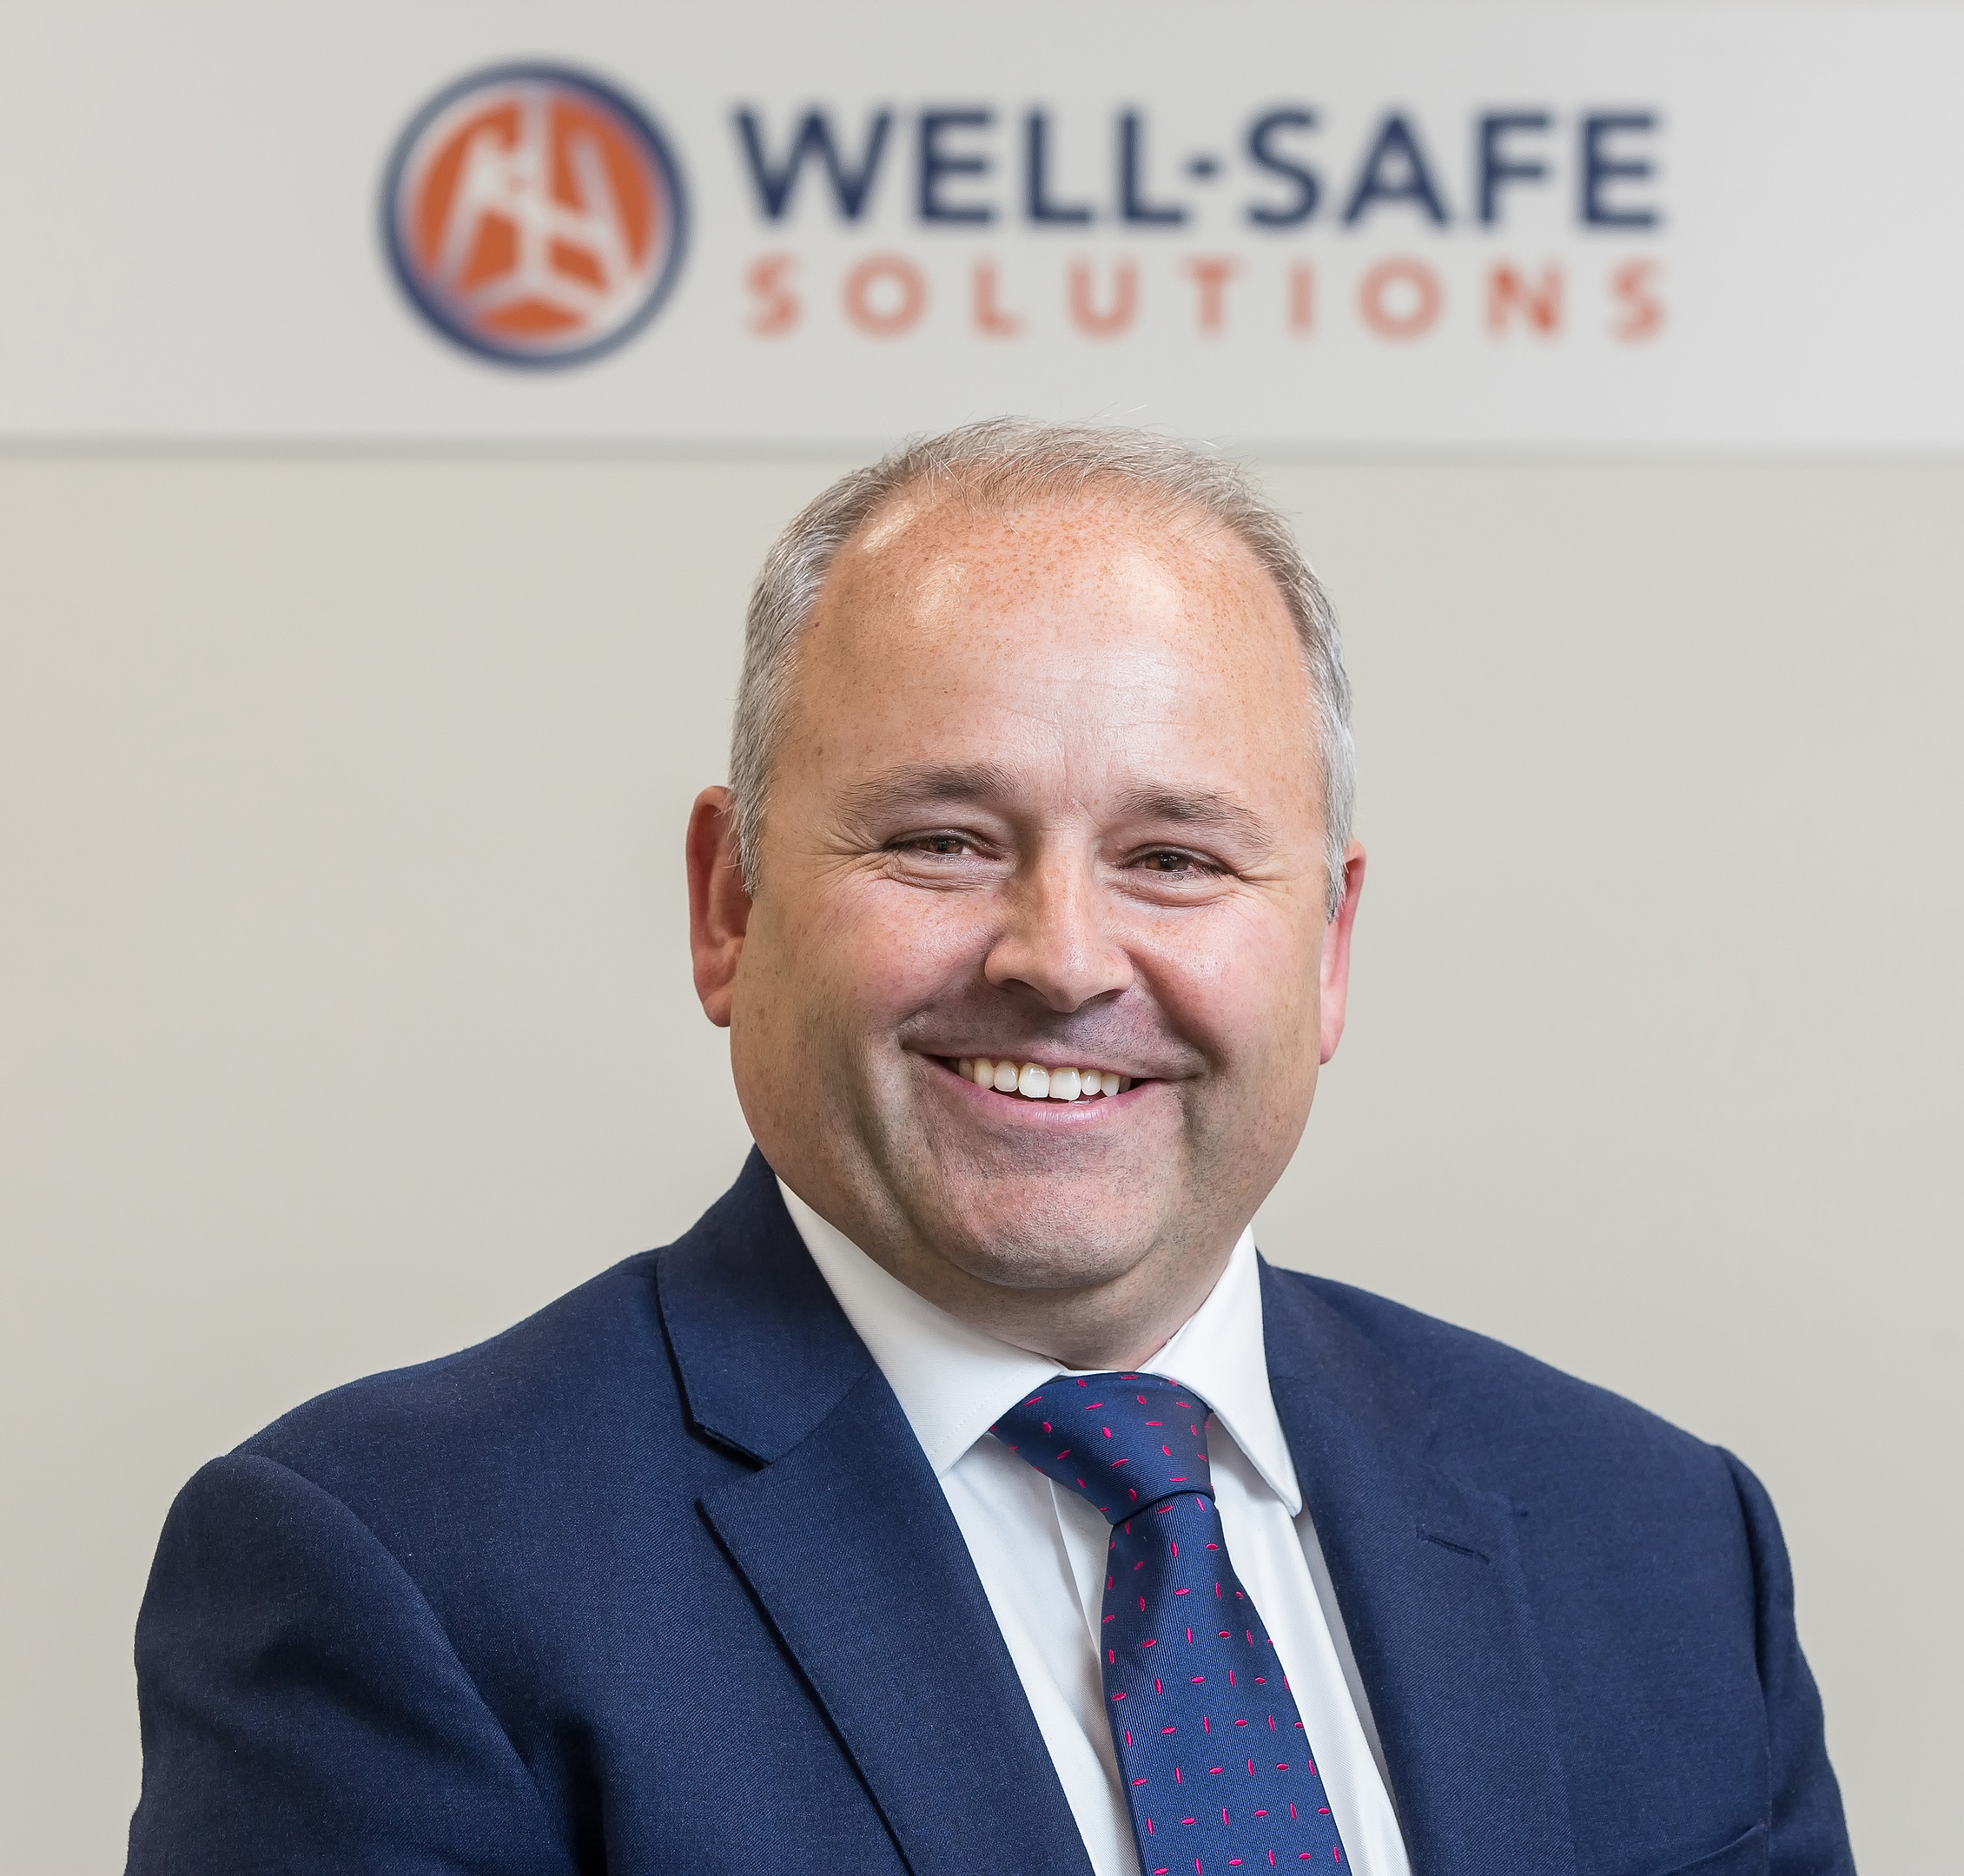 Phil Milton has been appointed chief executive officer of Well-Safe Solutions